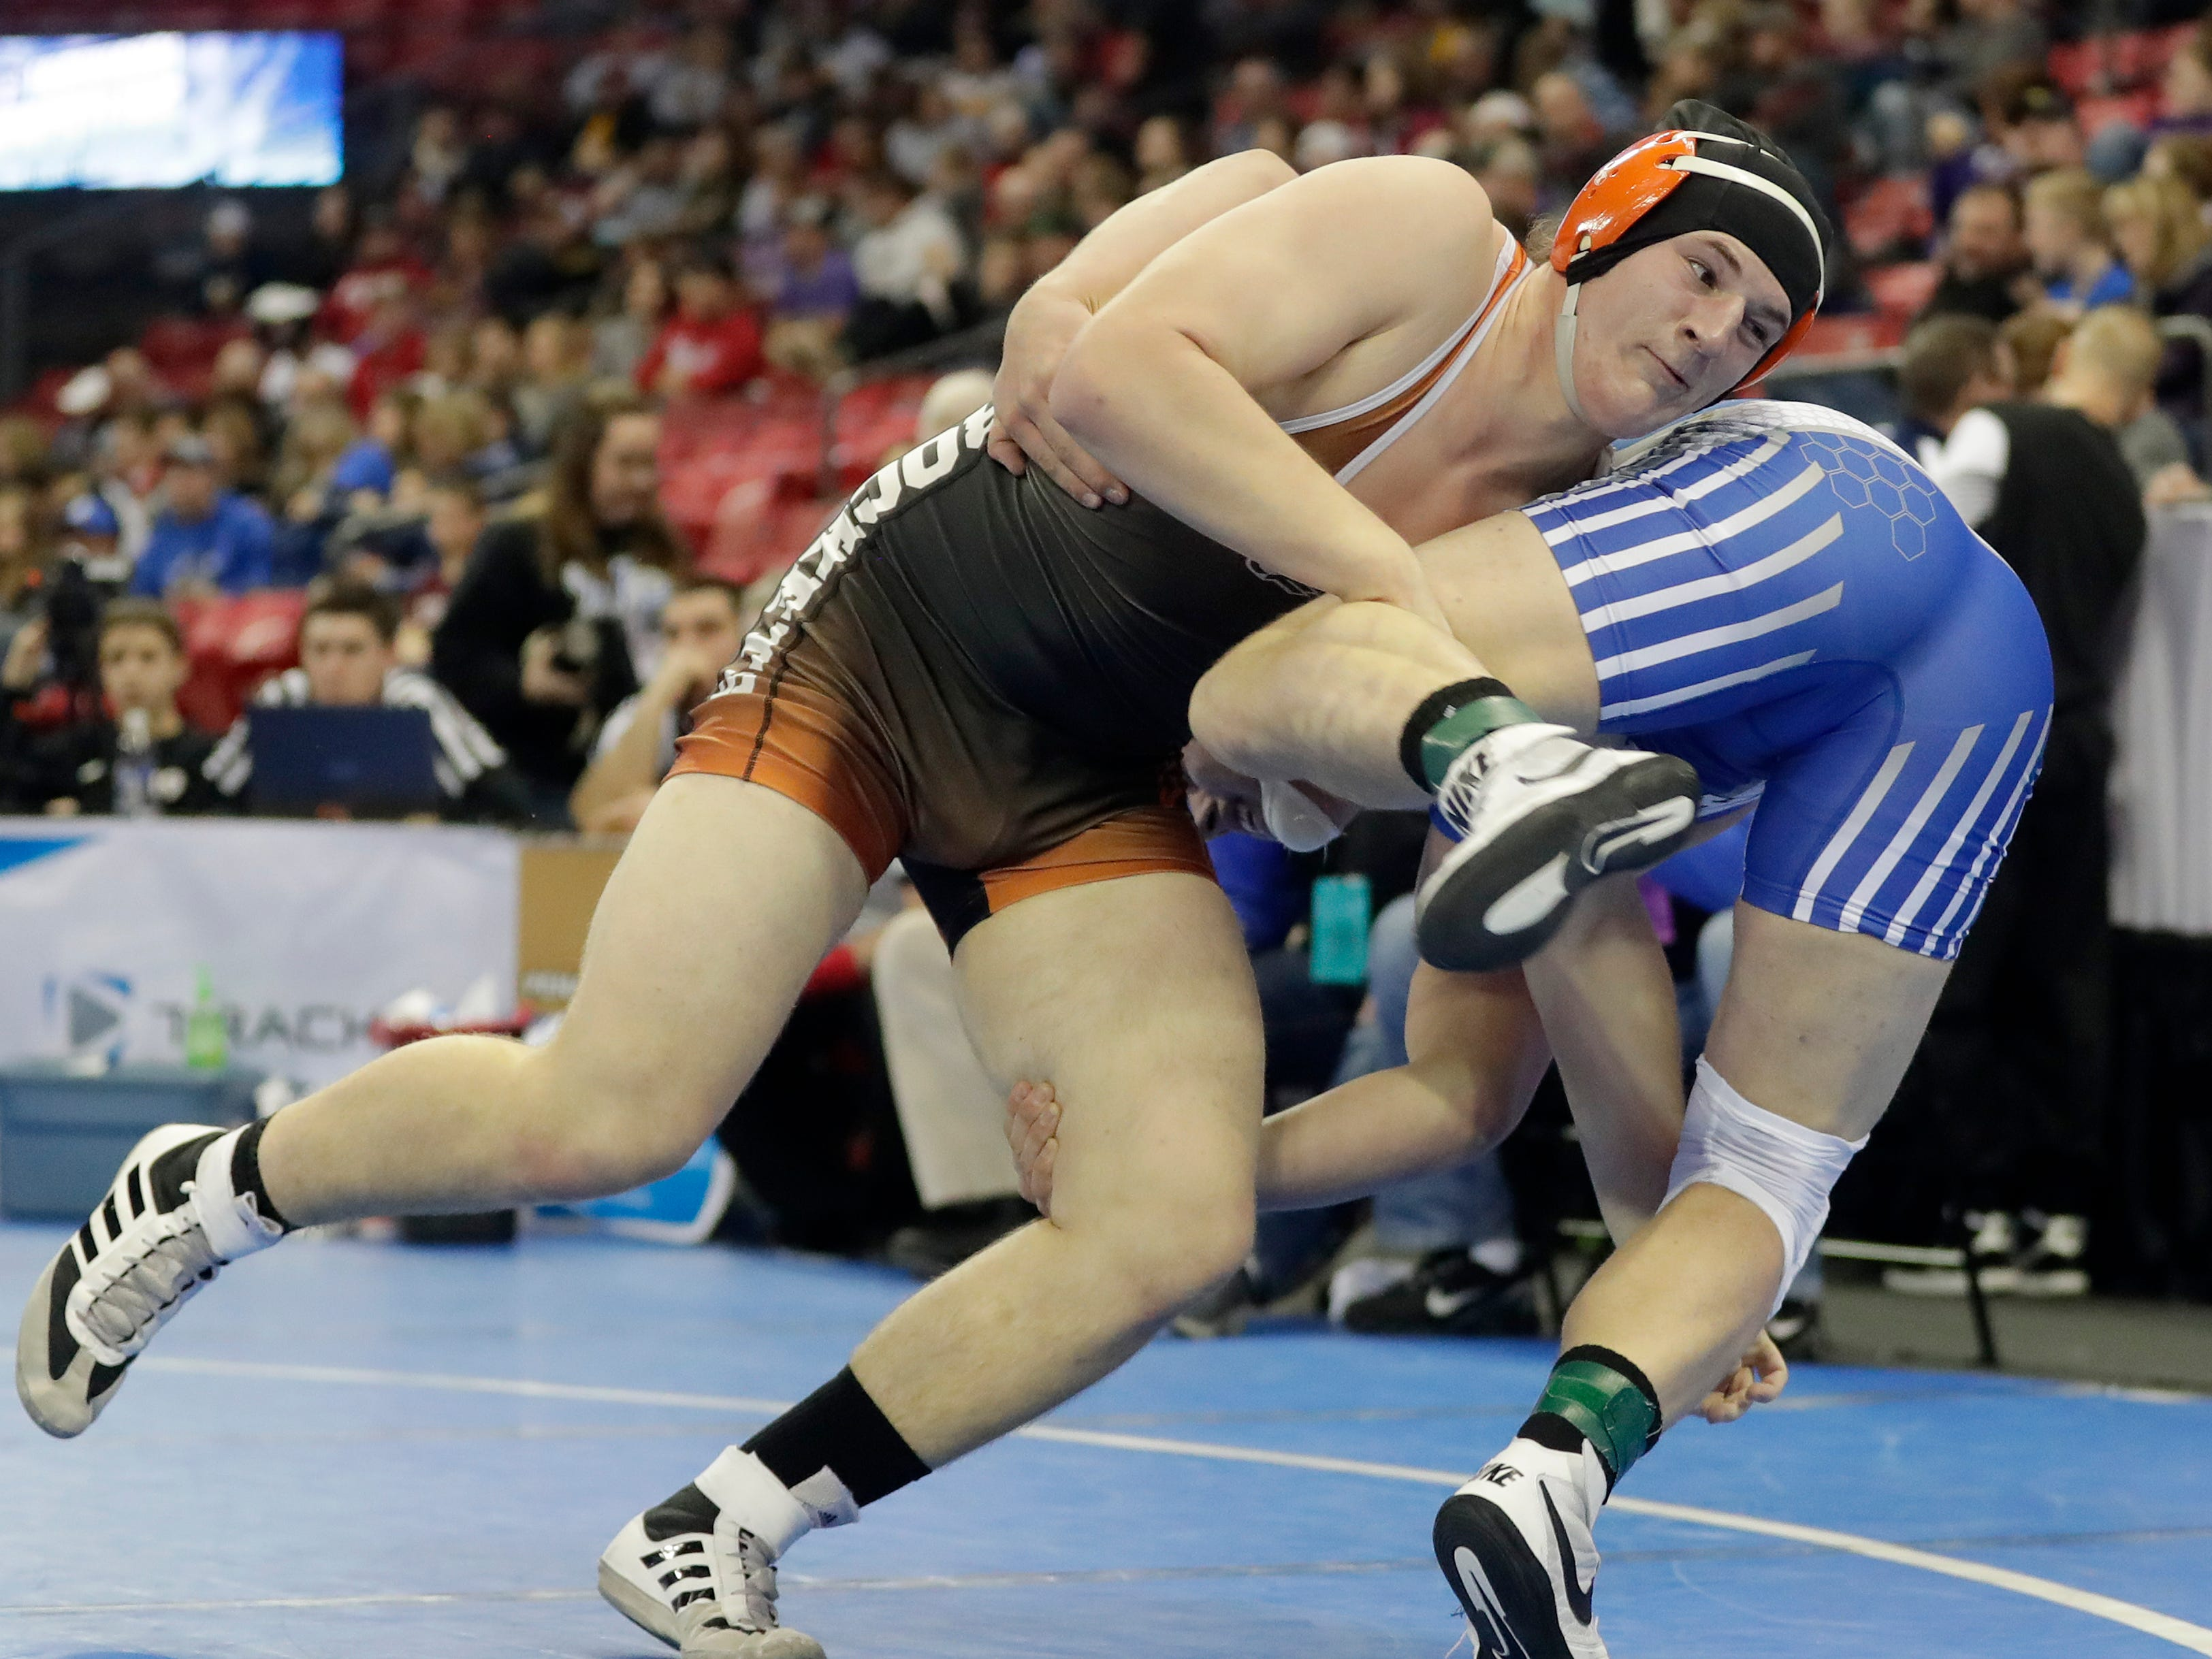 Cedar Grove-Belgium's Brett Feind wrestles in a Division 3 220-pound preliminary match at the WIAA state individual wrestling tournament at the Kohl Center on Thursday, February 21, 2019 in Madison, Wis.